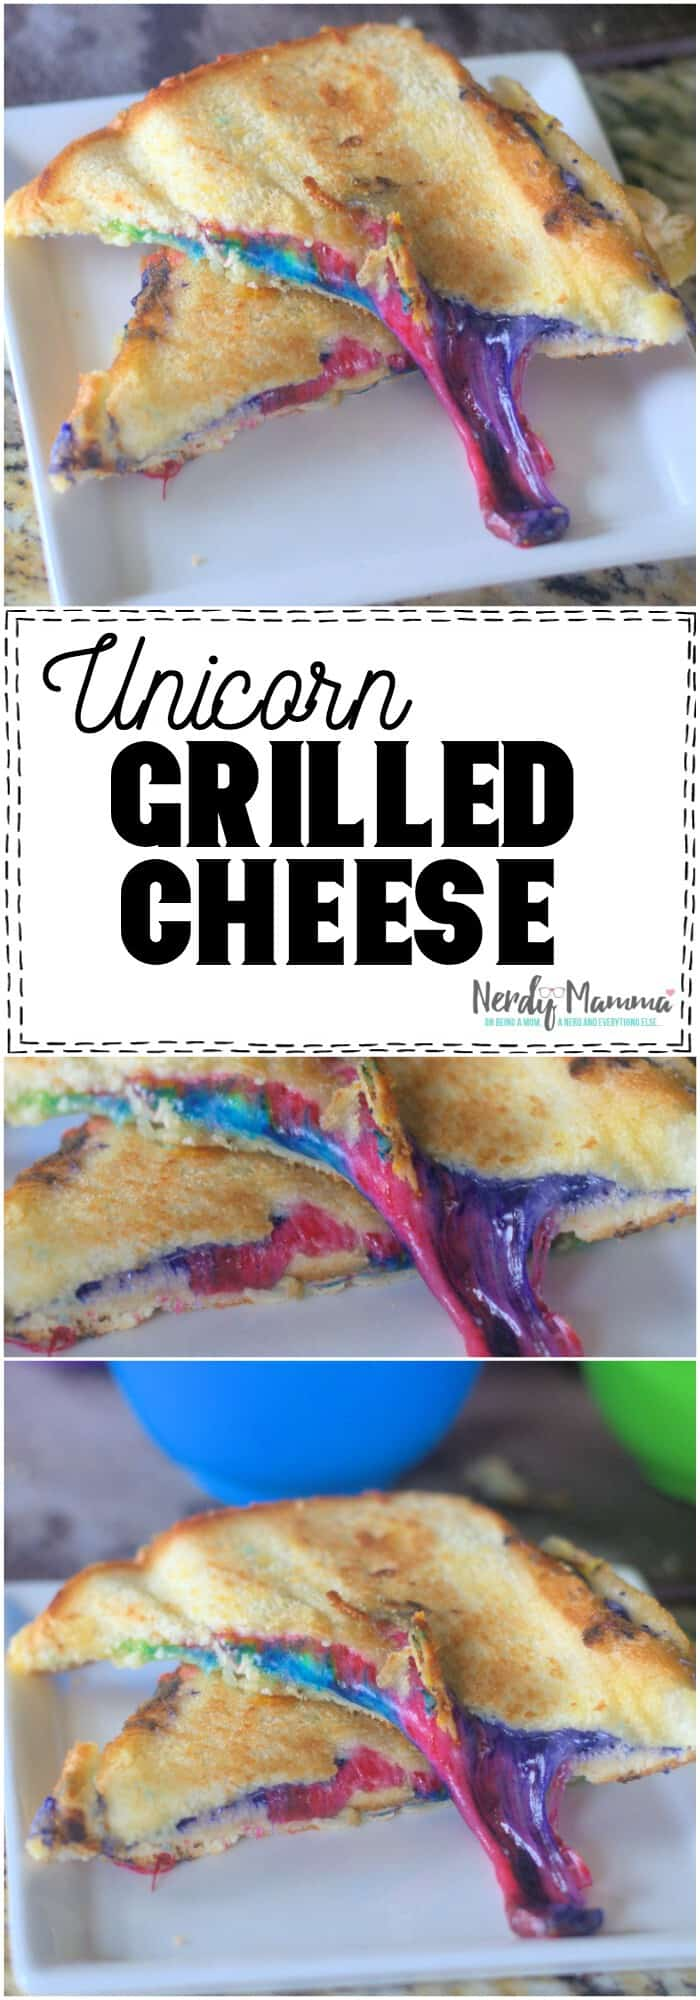 Dude. This Unicorn Grilled Cheese is perfect for the kids. Ridiculous and fun. #unicorn #grilledcheese #recipe #unicorngrilledcheese #silly #food